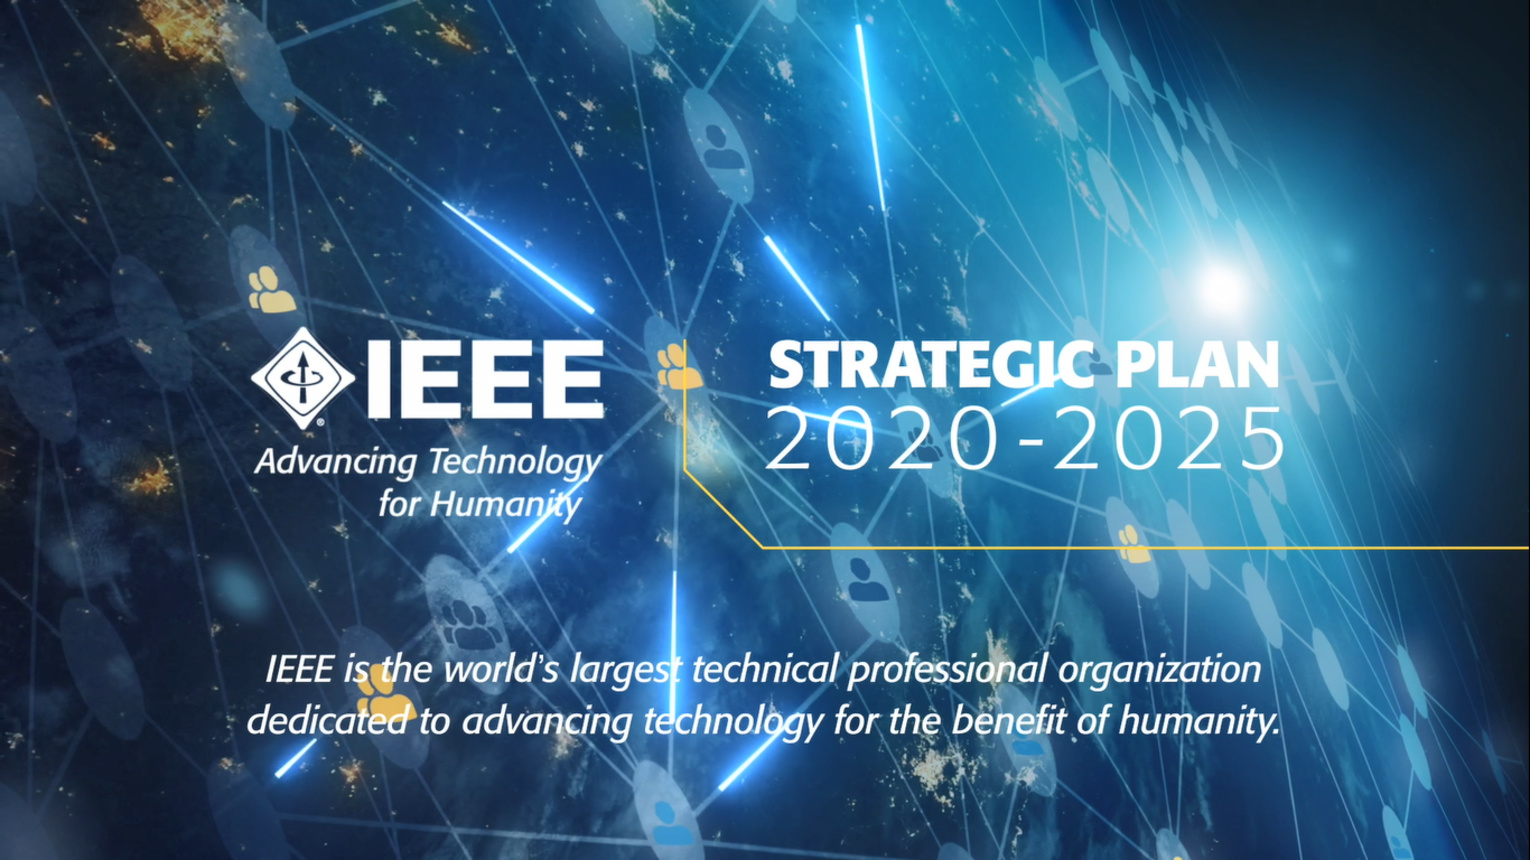 IEEE 2020 Strategic Plan